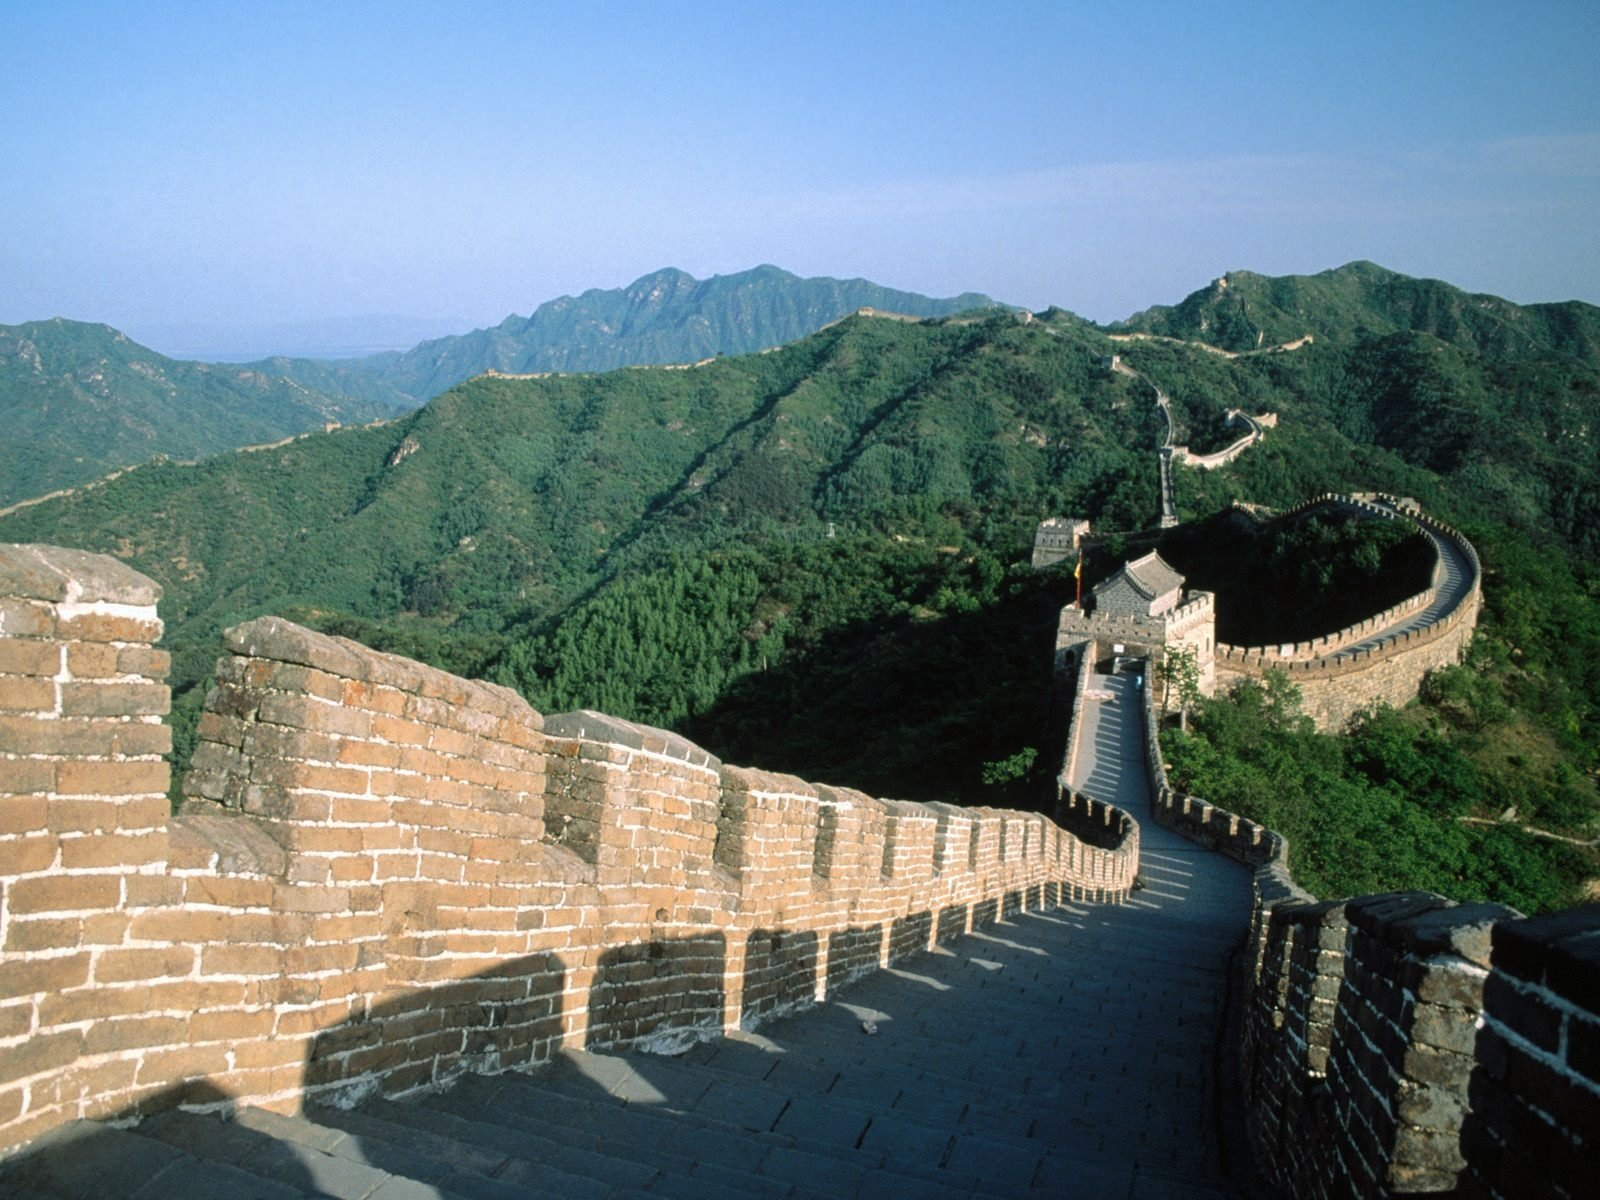 56 Great Wall of China HD Wallpapers Background Images 1600x1200